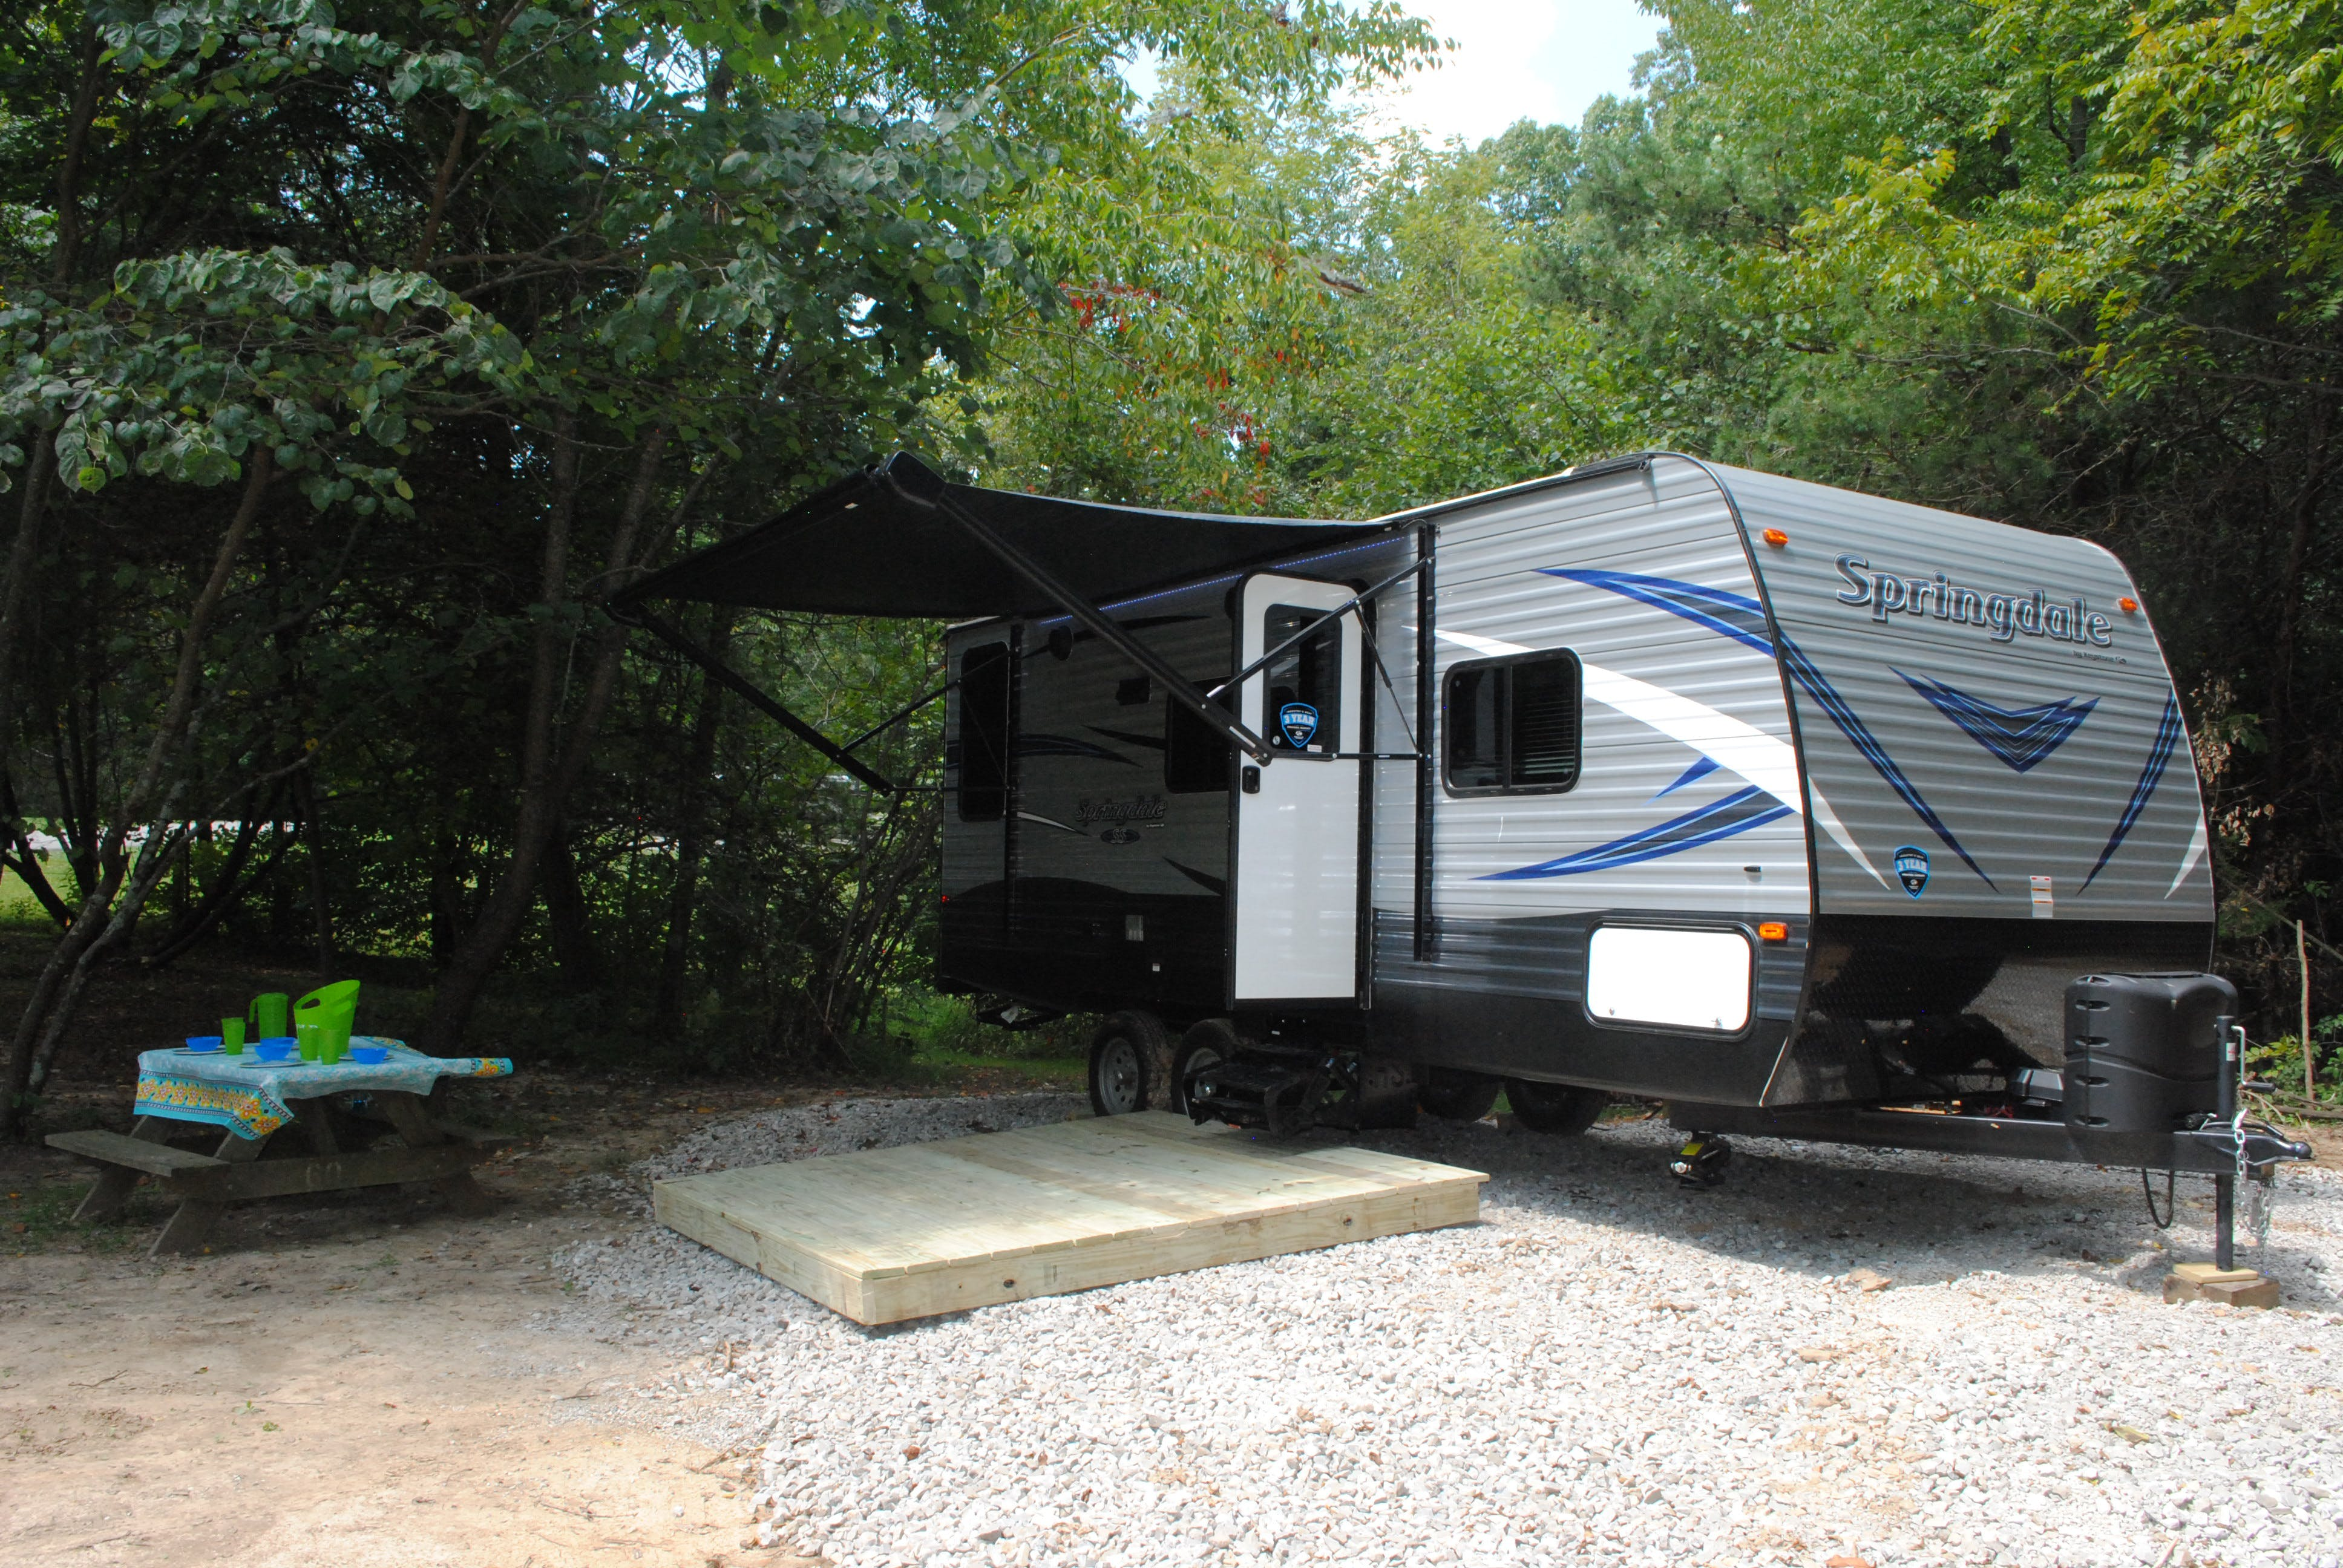 Rental RV's at Buffalo Trace Park